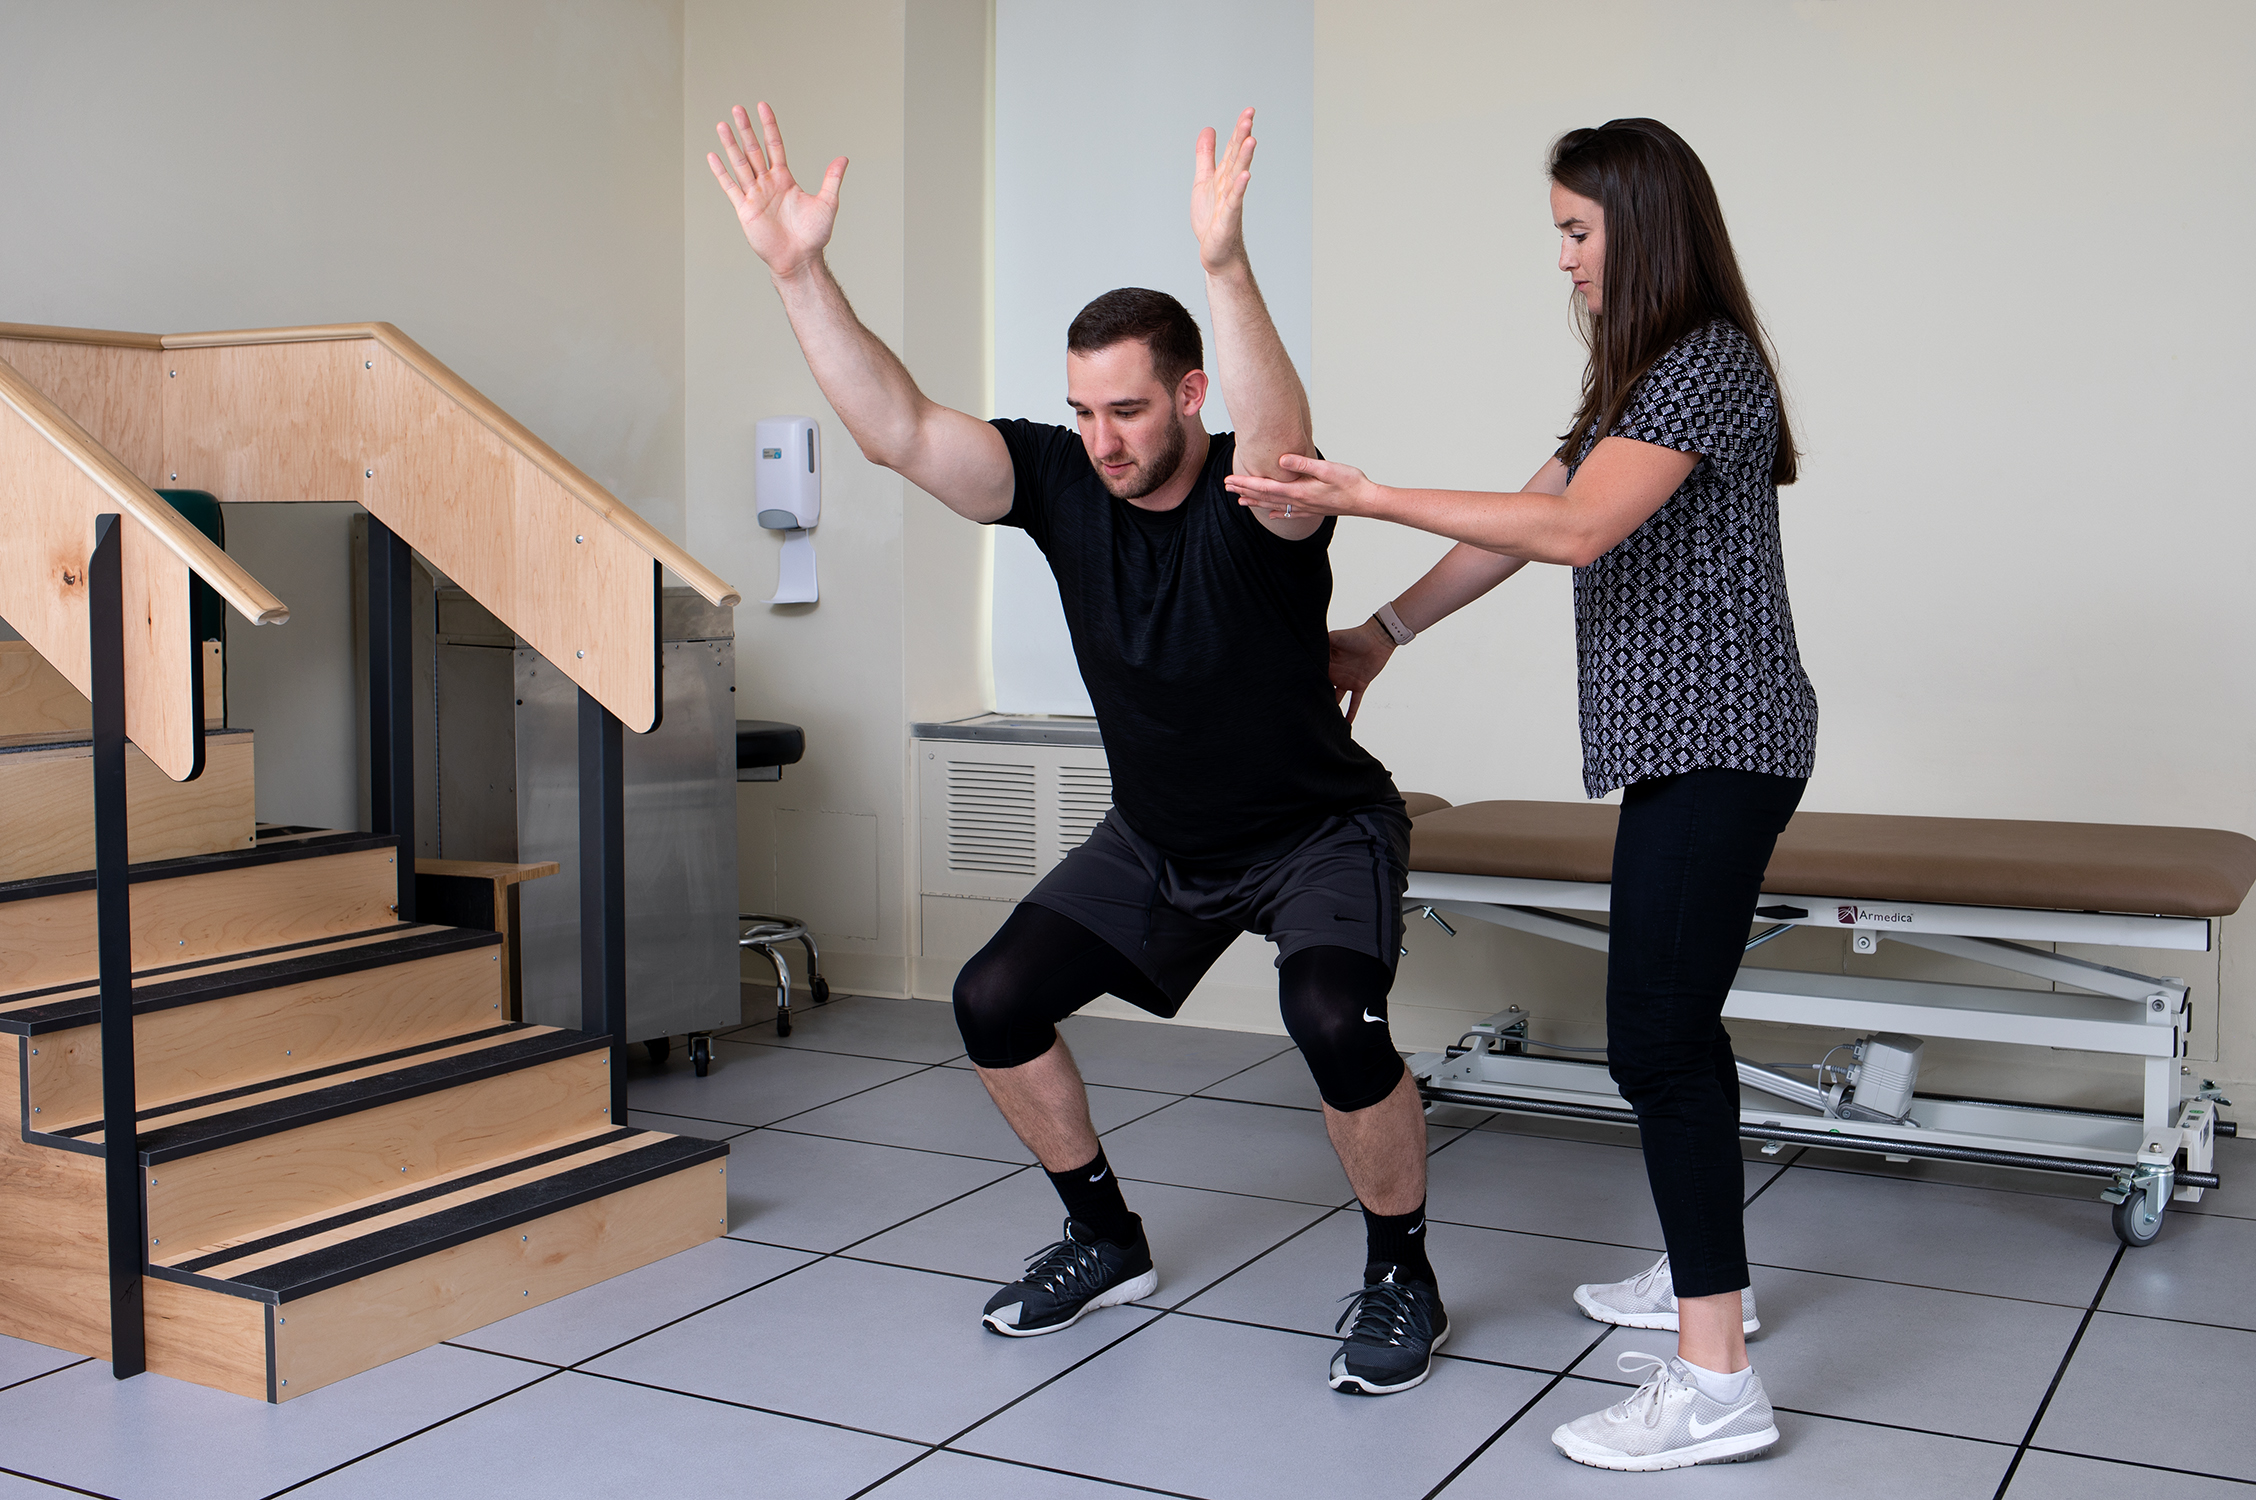 A physical therapist helping a man perform exercises